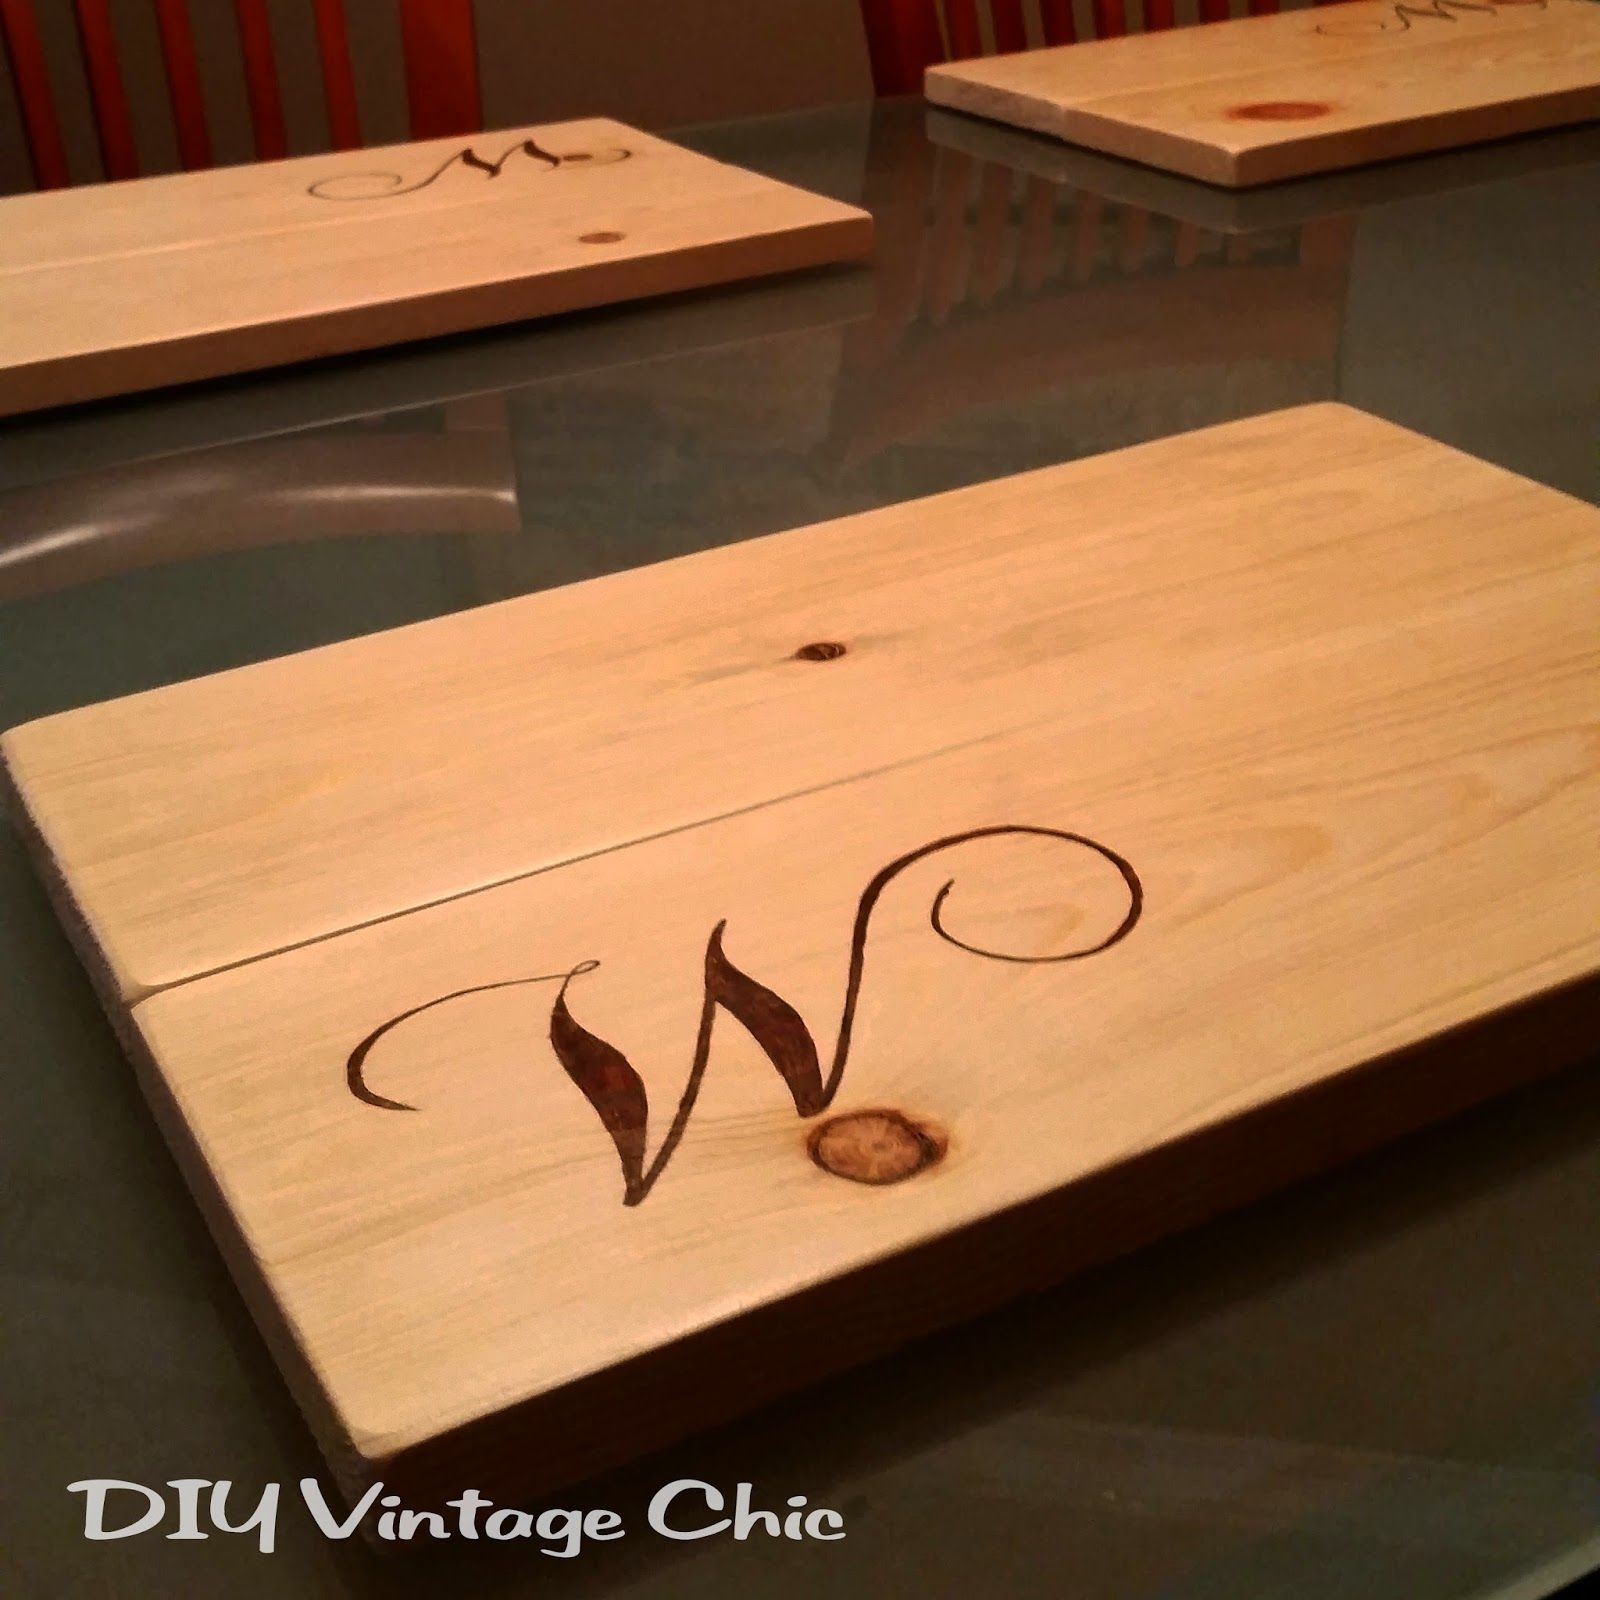 Diy Table Coasters Diy Vintage Chic Diy Custom Monogram Wooden Placemats